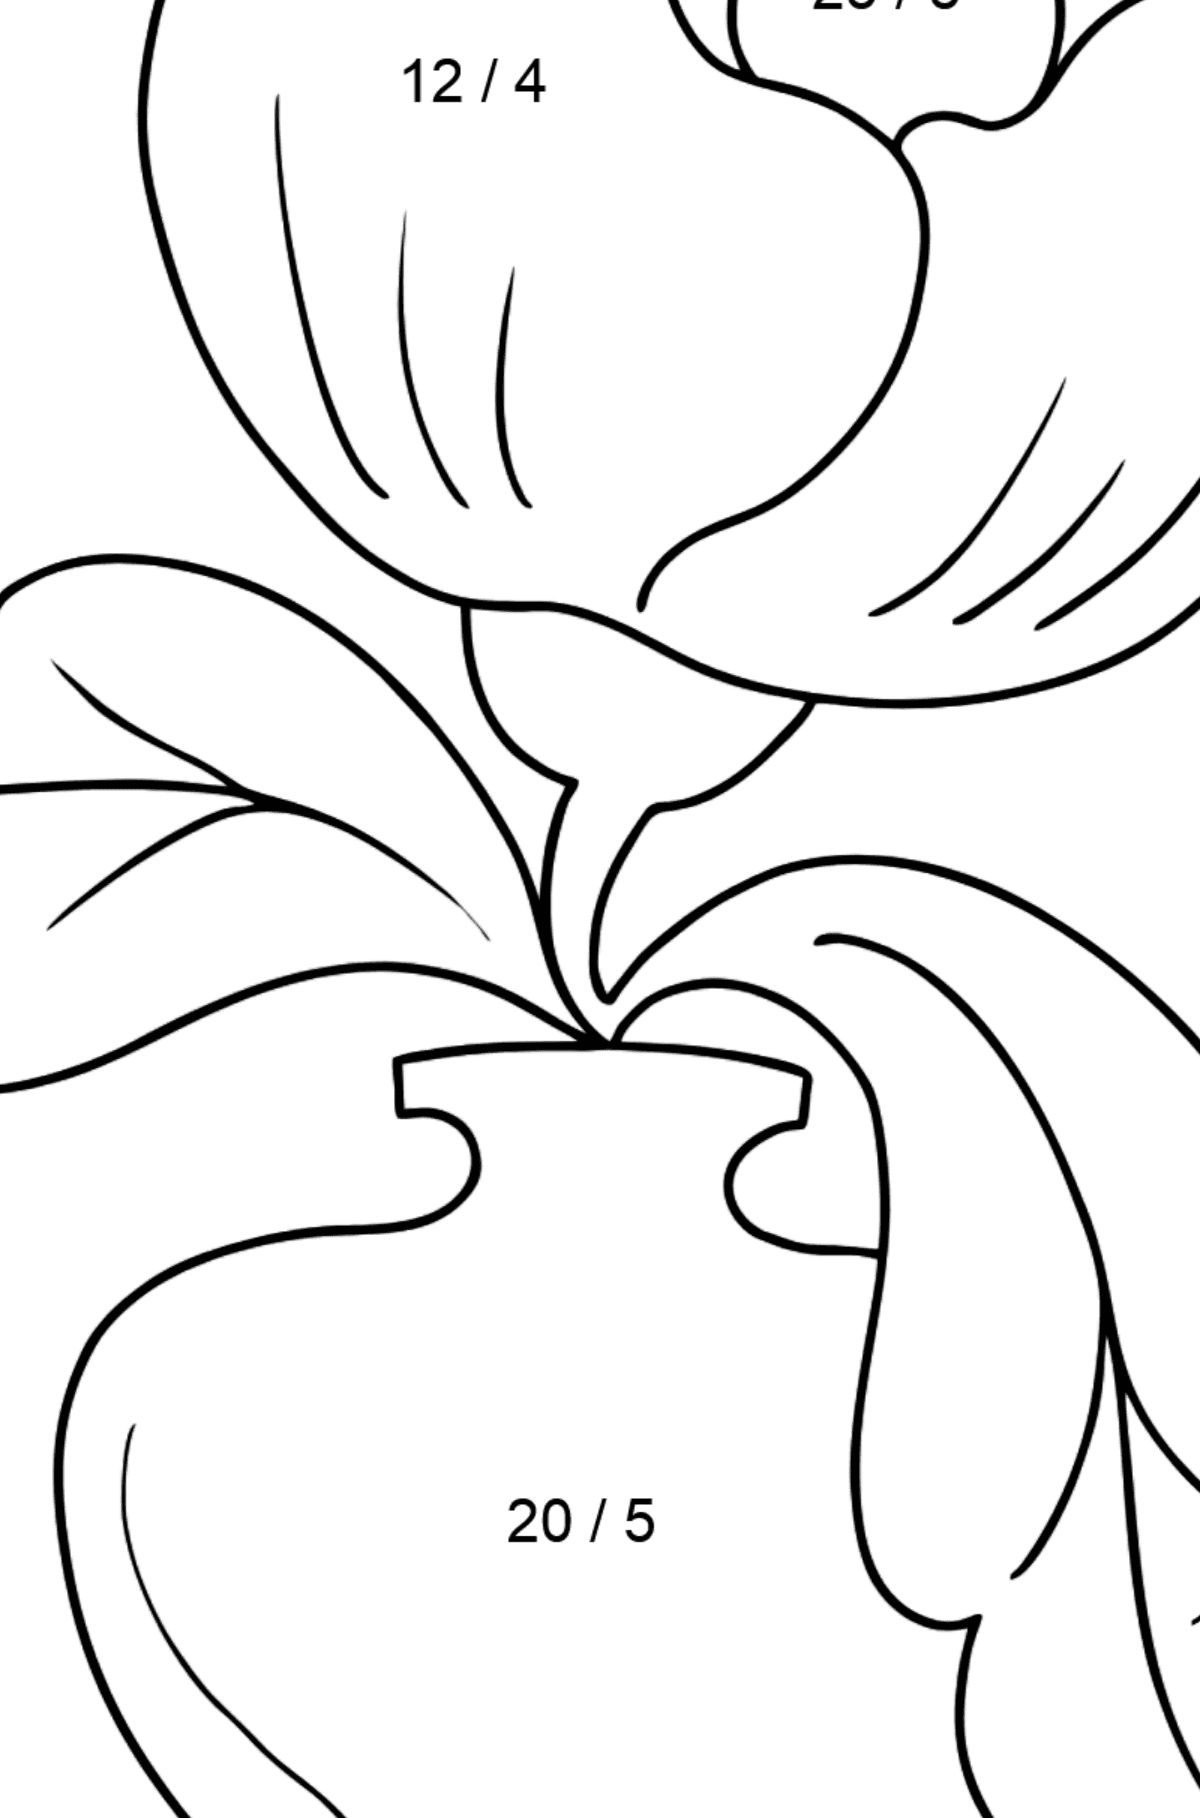 Coloring Page - flowers in a vase - Math Coloring - Division for Kids